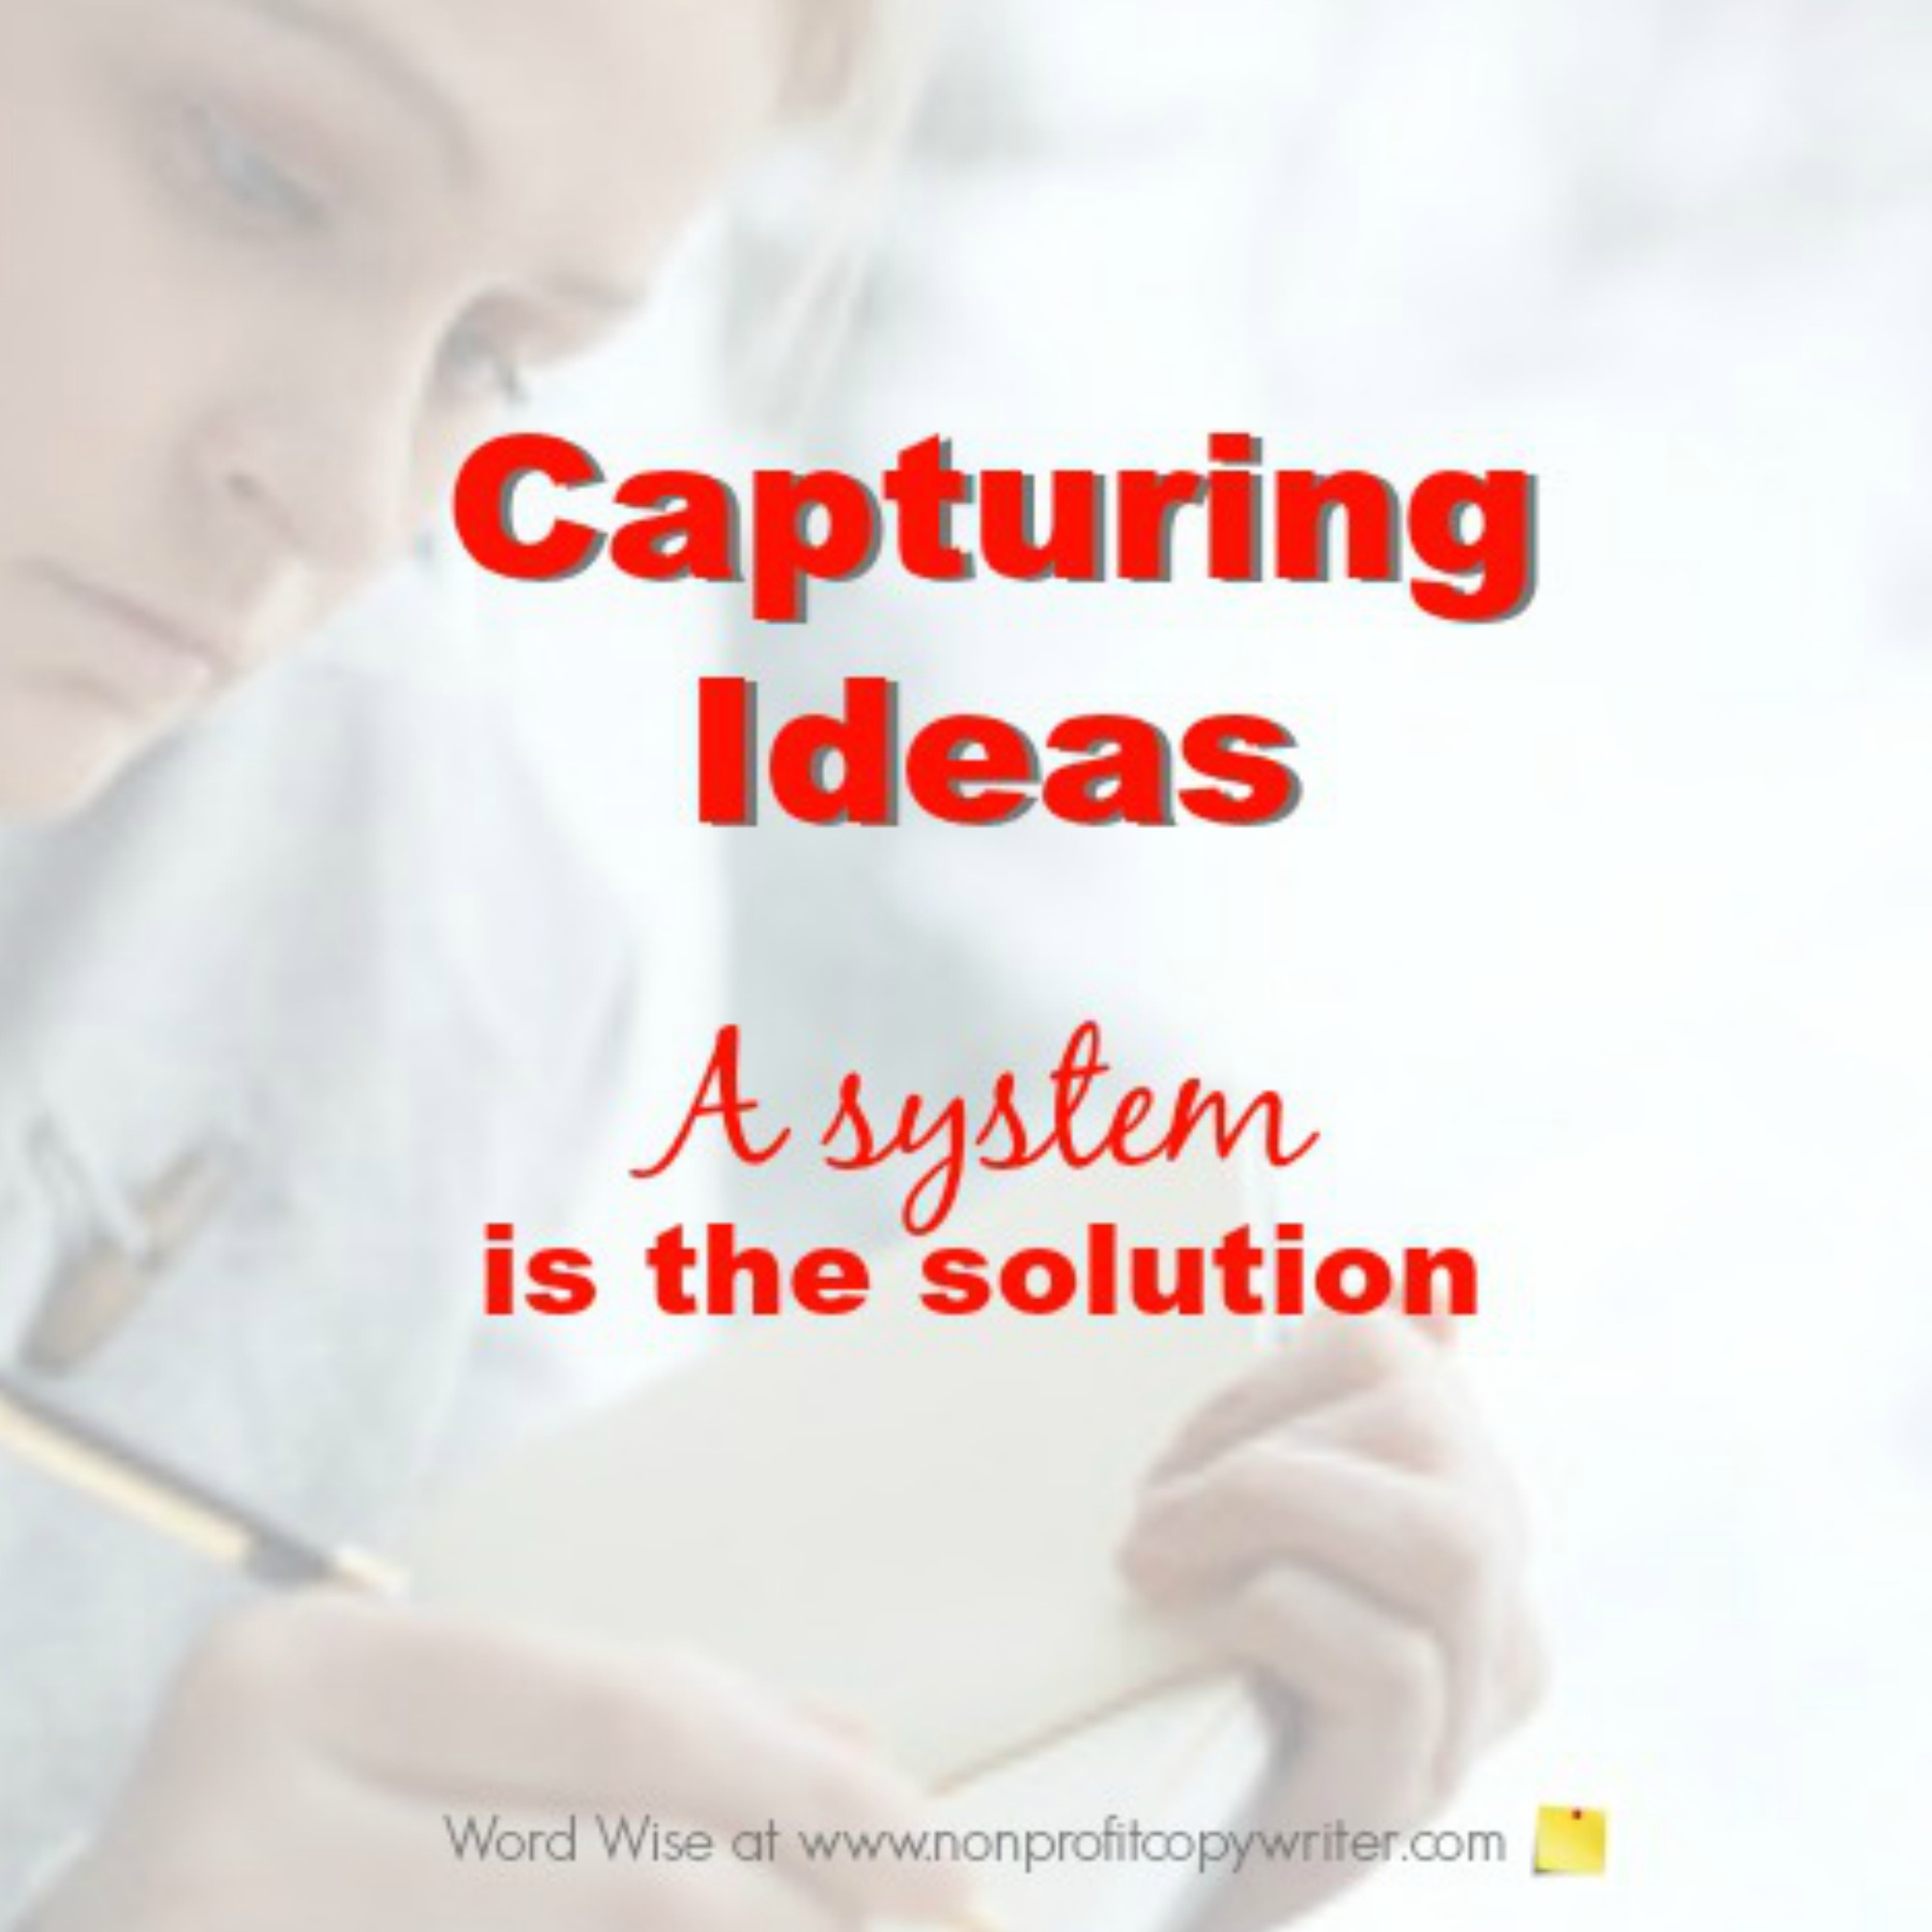 Capturing ideas with Word Wise at Nonprofit Copywriter